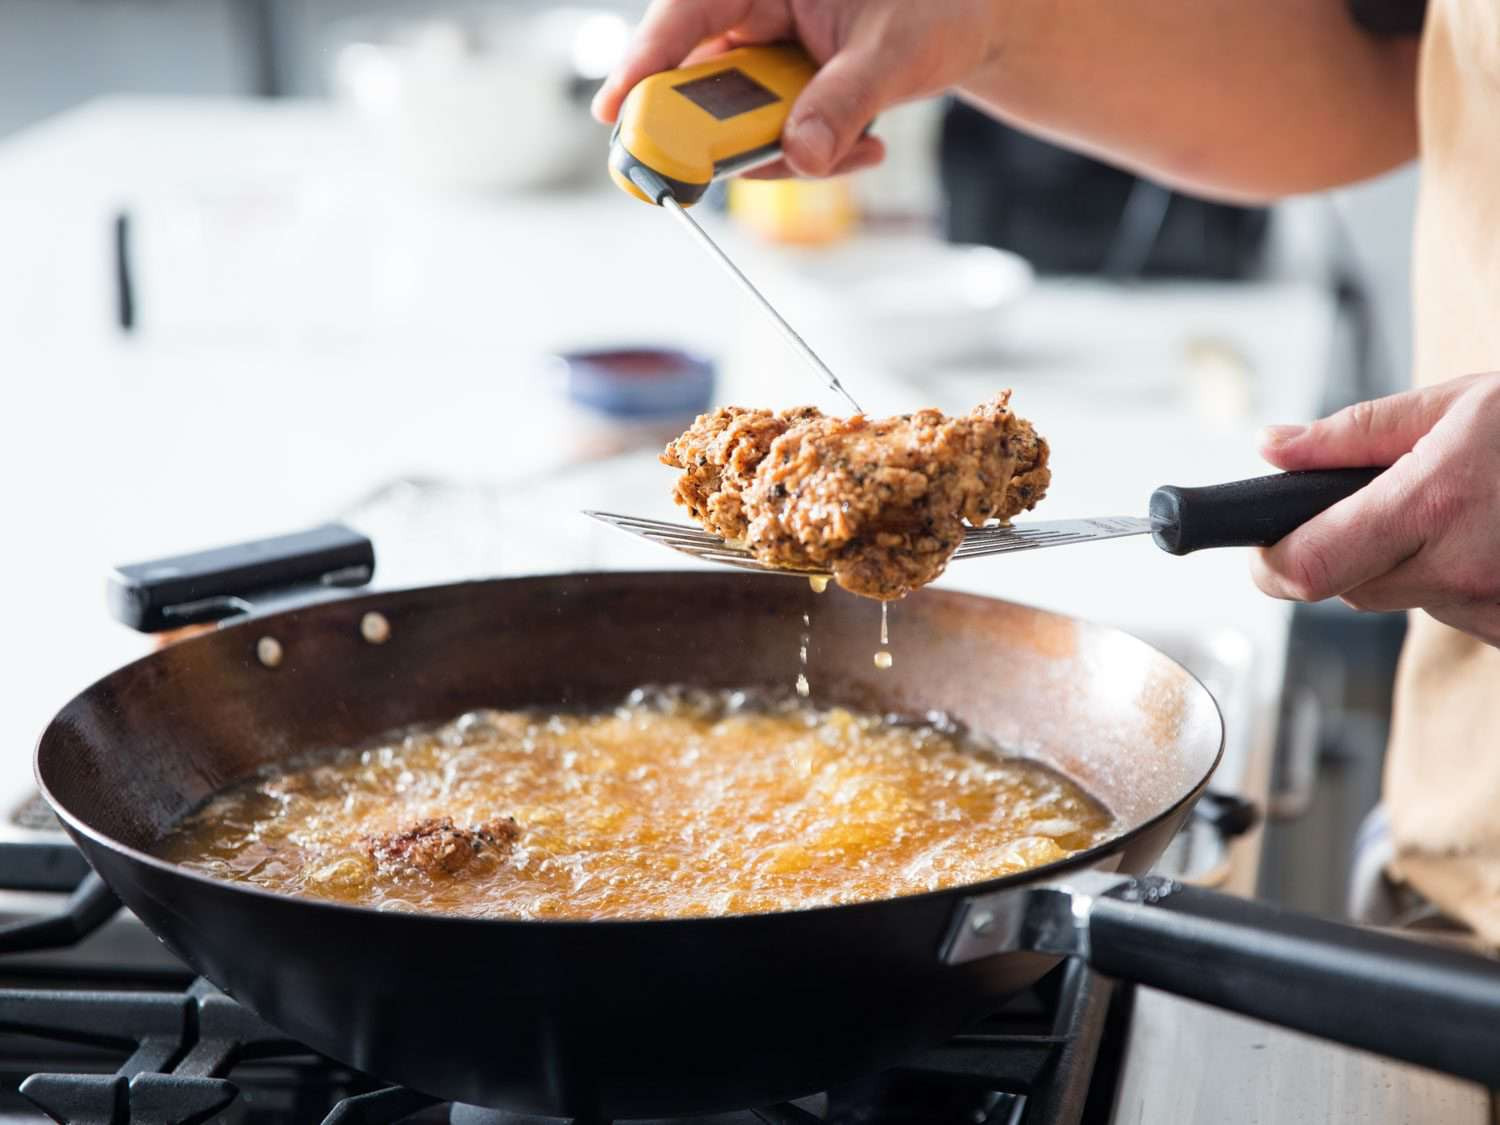 Digital thermometer being used to test the doneness of a piece of fried chicken, held aloft over a wok filled with bubbling oil and more pieces of frying chicken.